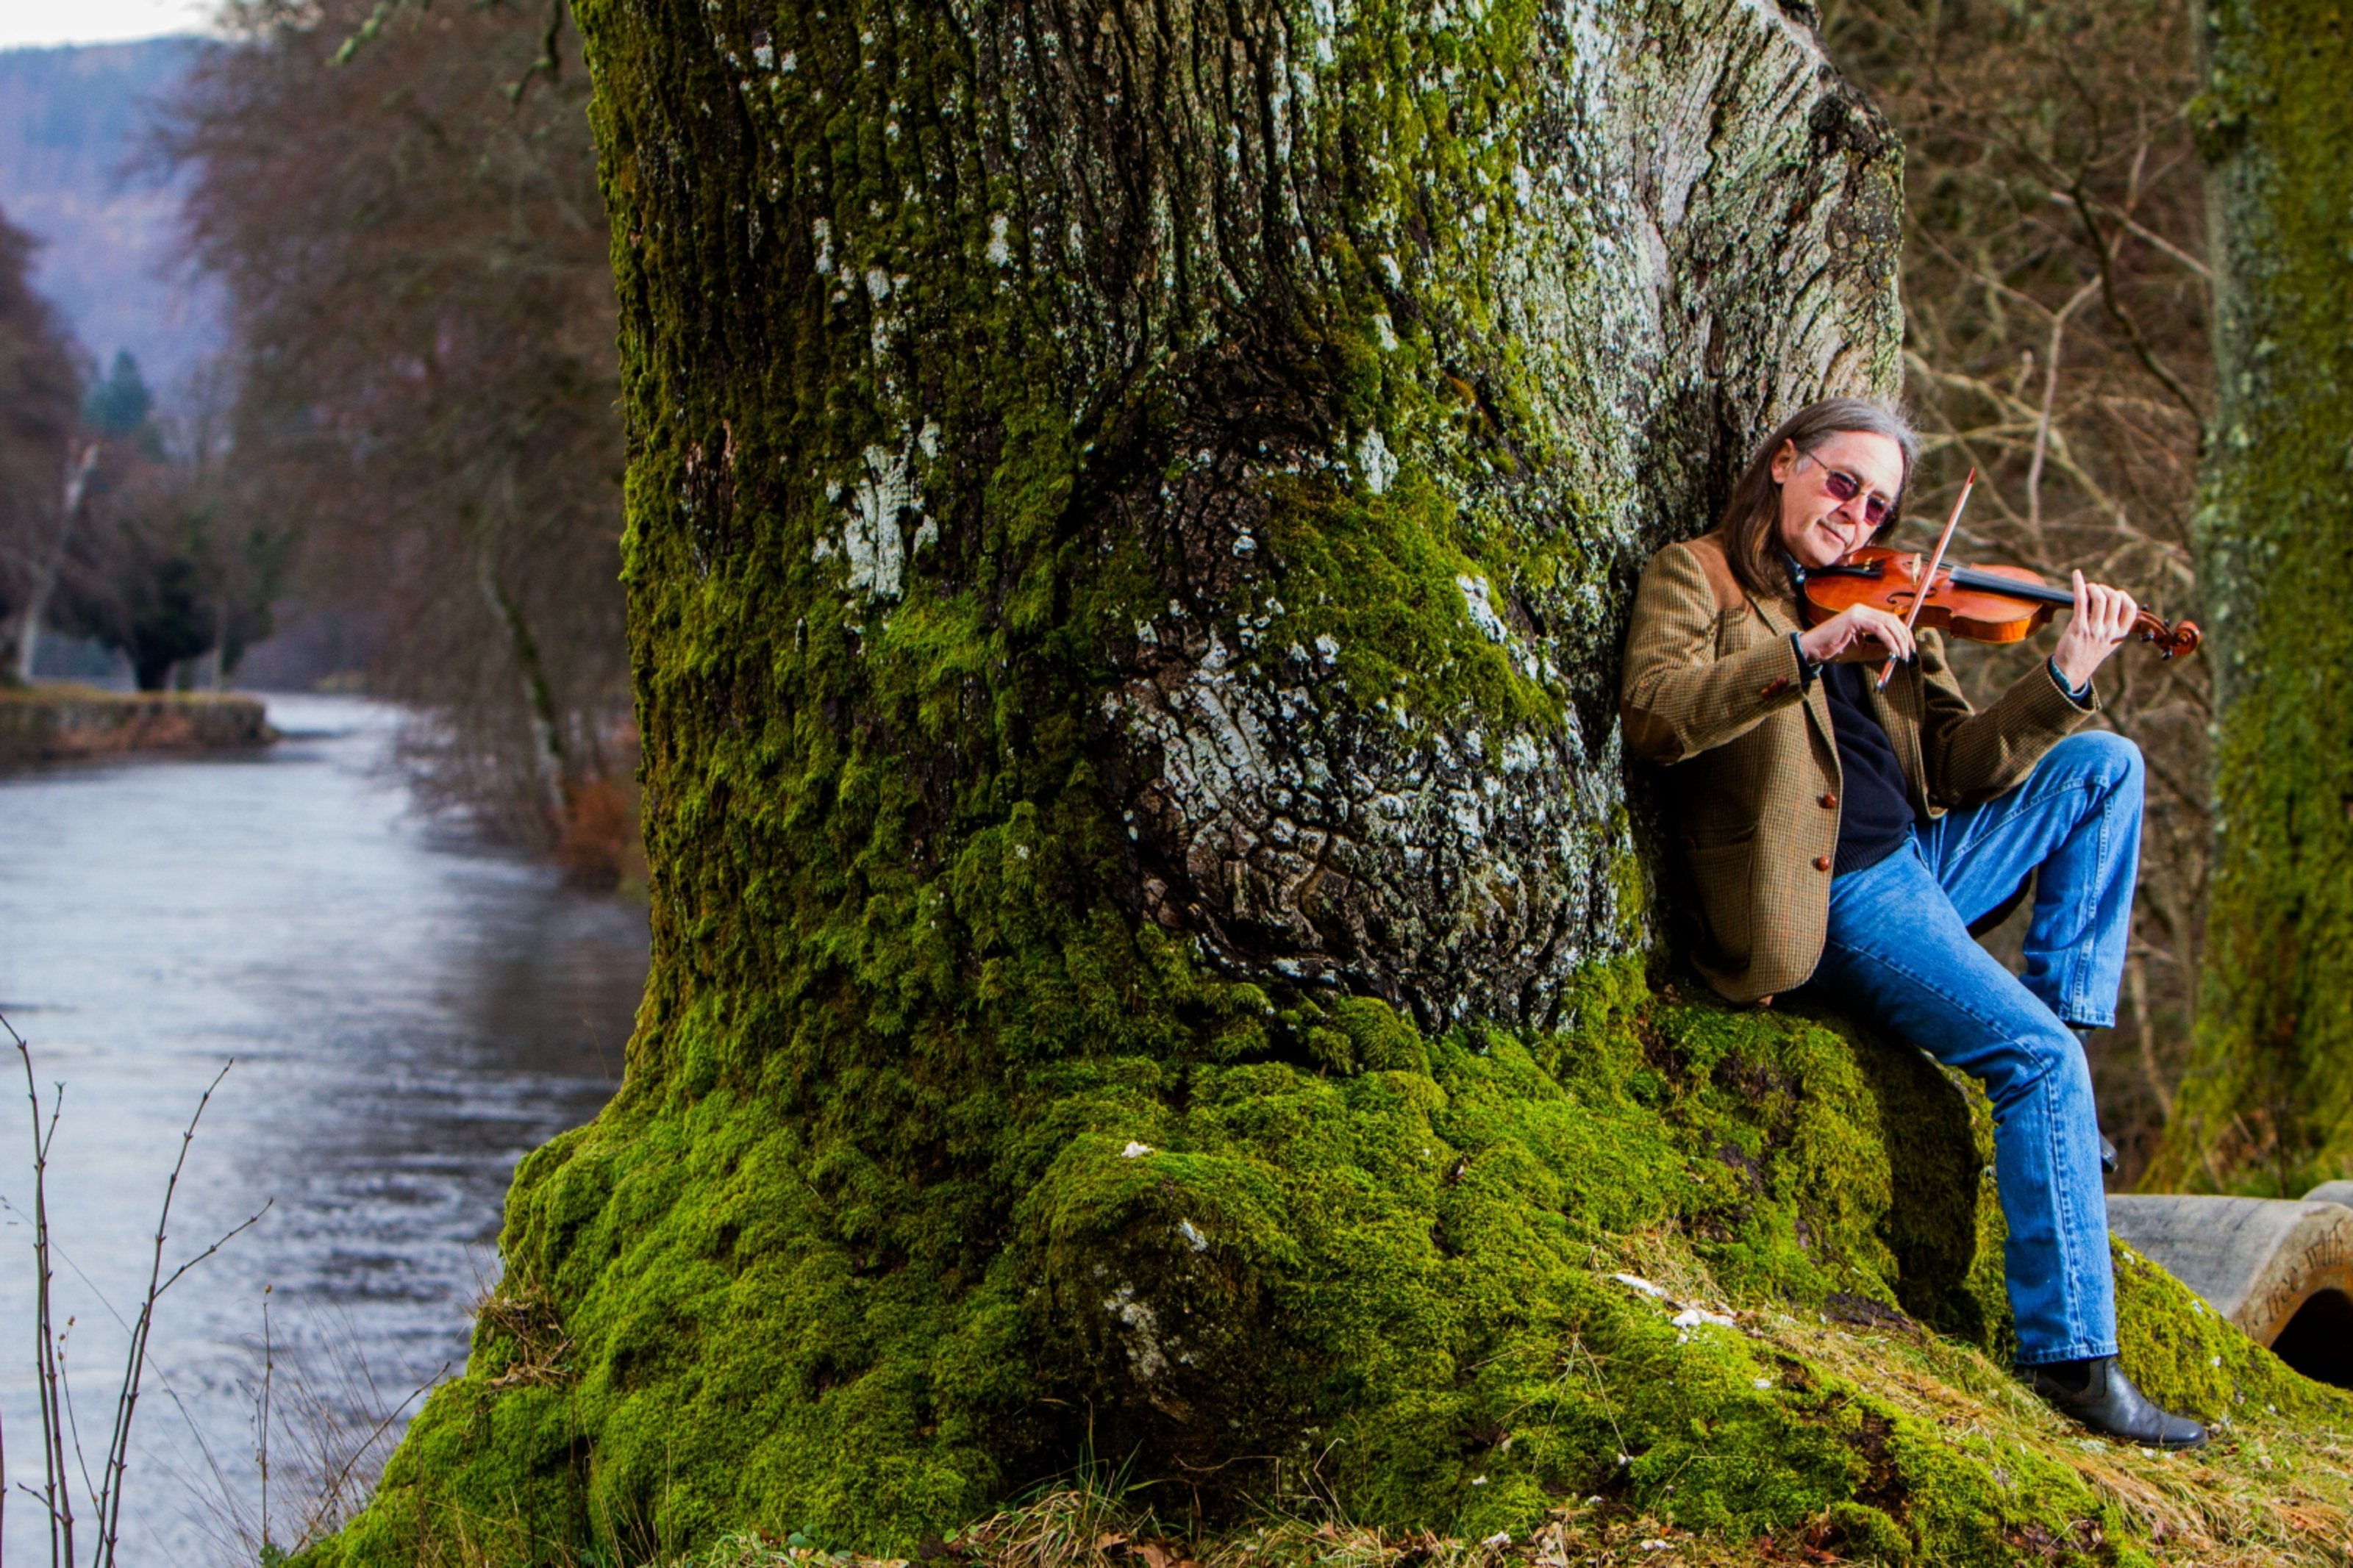 Scottish musician Dougie MacLean under the Niel Gow oak near Dunkeld. Dougie is one of many modern day admirers of Gow's work.